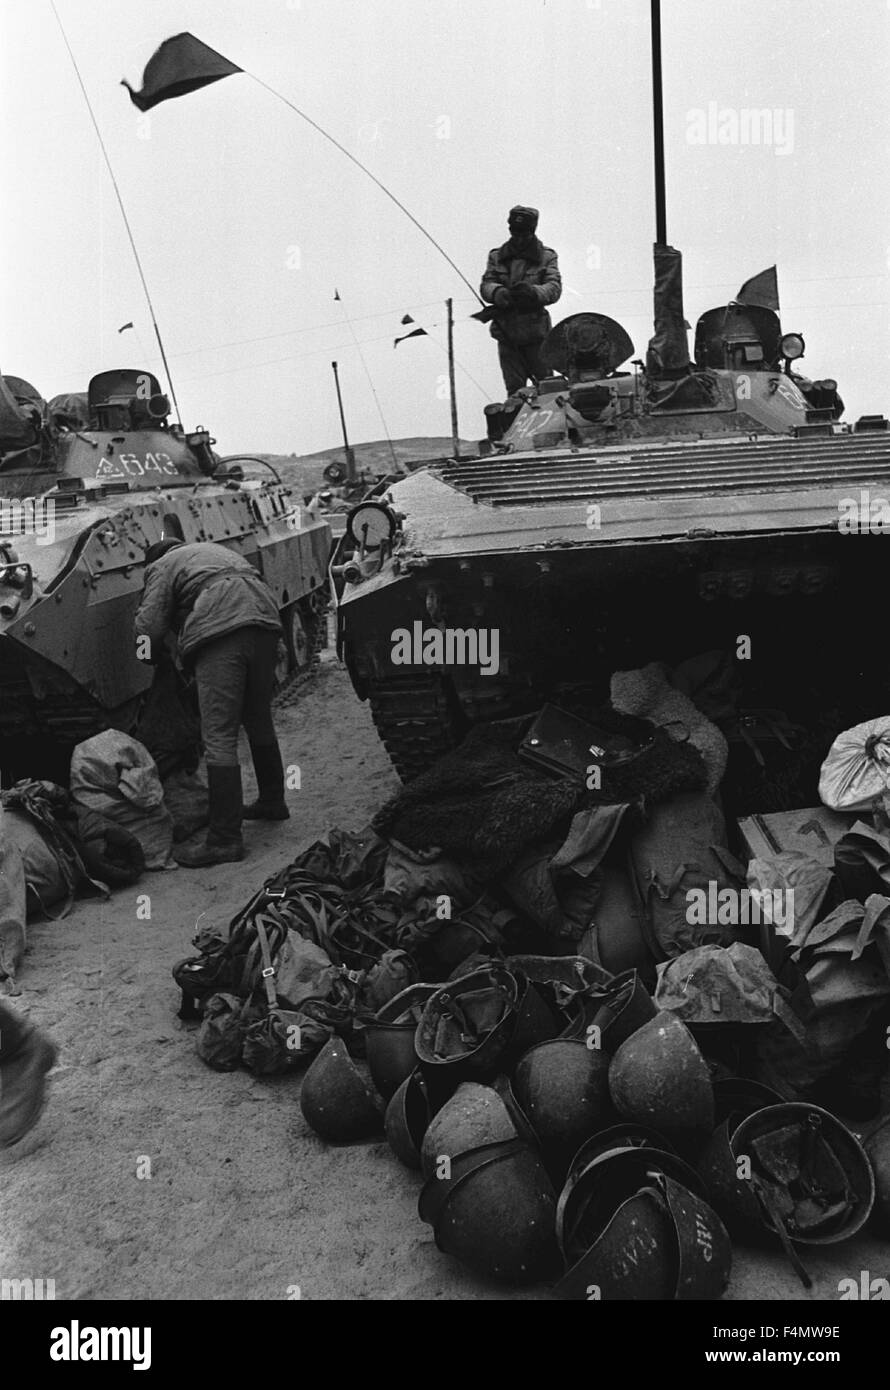 Soviet Afghanistan war - Page 6 Ussr-termez-withdrawal-of-soviet-forces-from-afghanistan-soldiers-F4MW9E